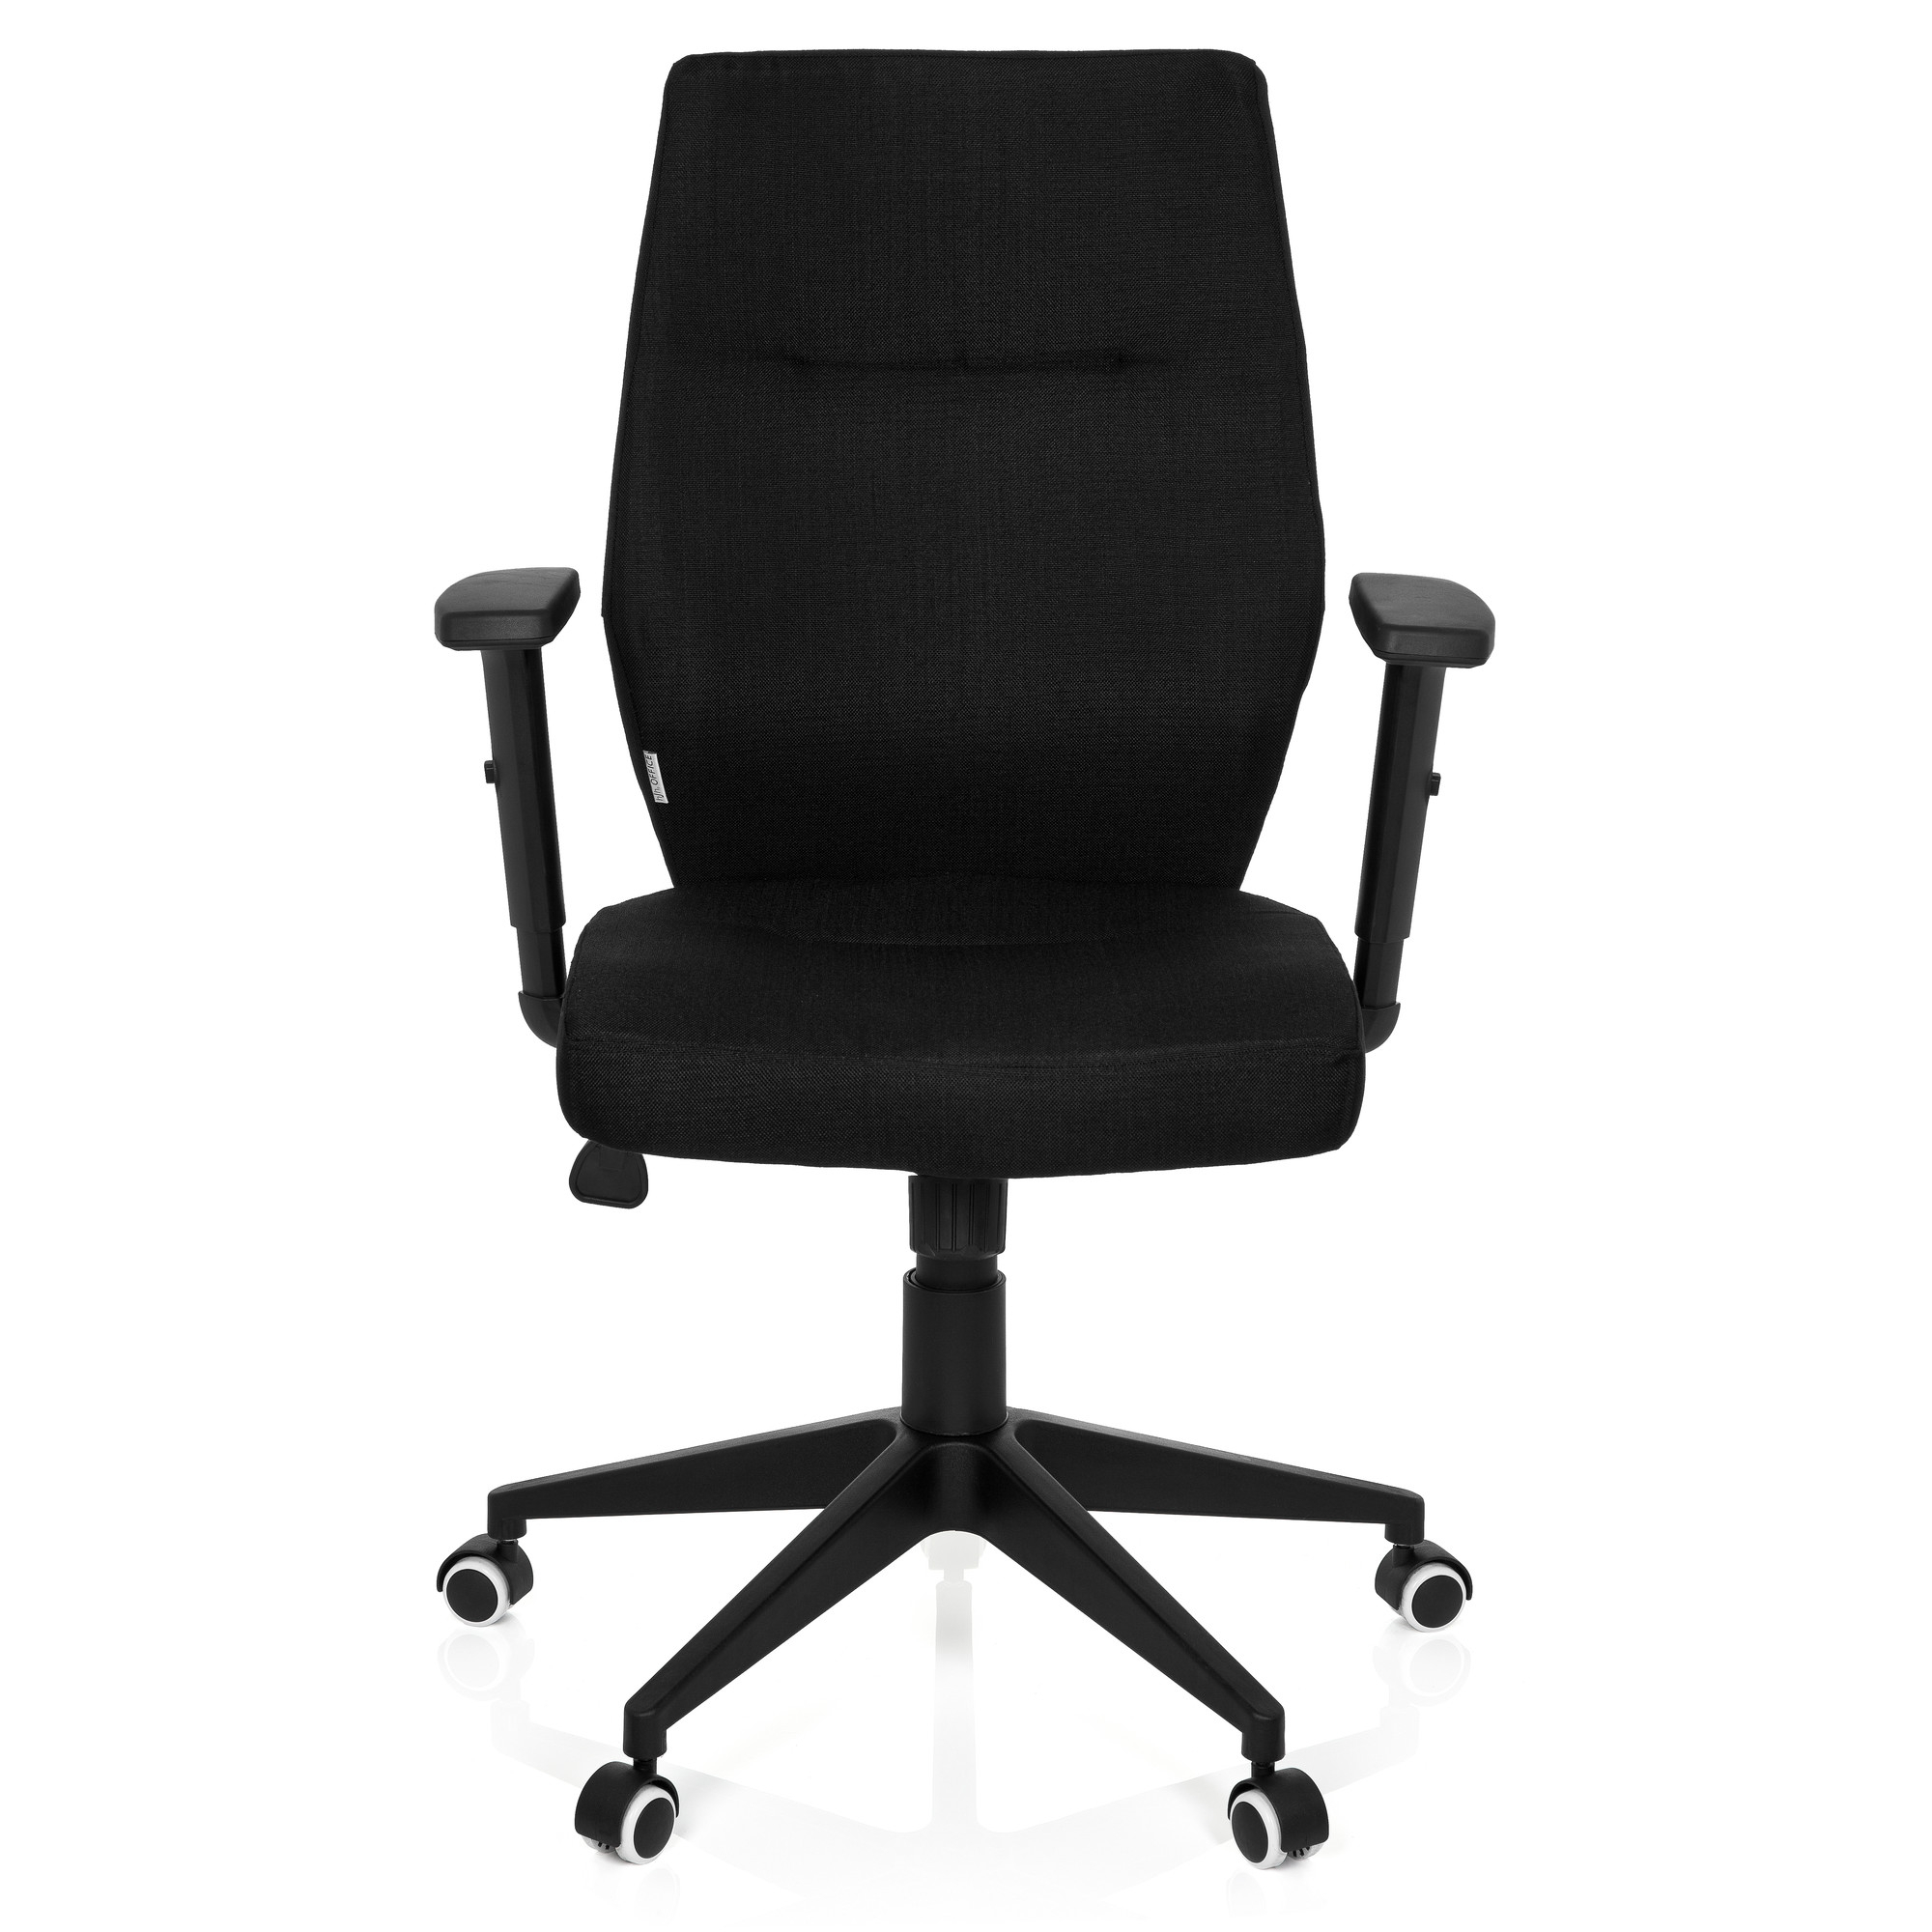 Professional Office Chairs Matteo – Professional Office Chair Hjh With Regard To Matteo Arm Sofa Chairs (View 11 of 20)